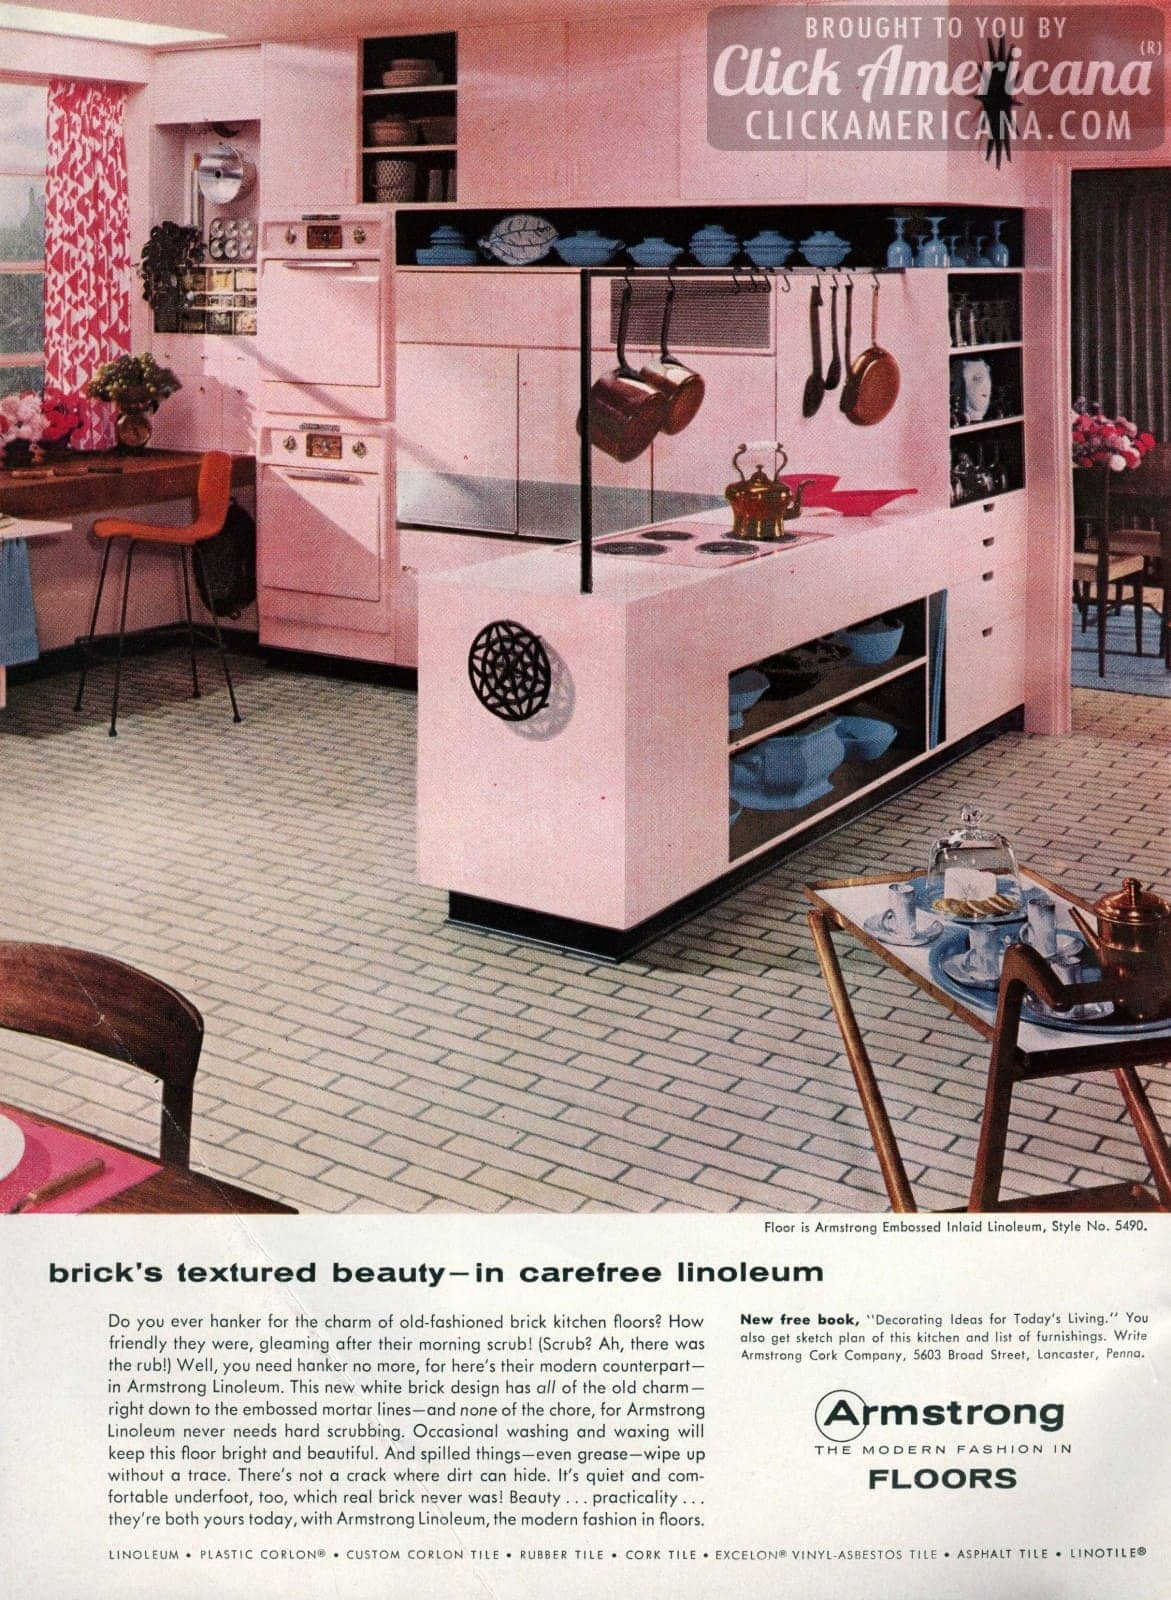 White brick linoleum floors for your pink kitchen (1956)